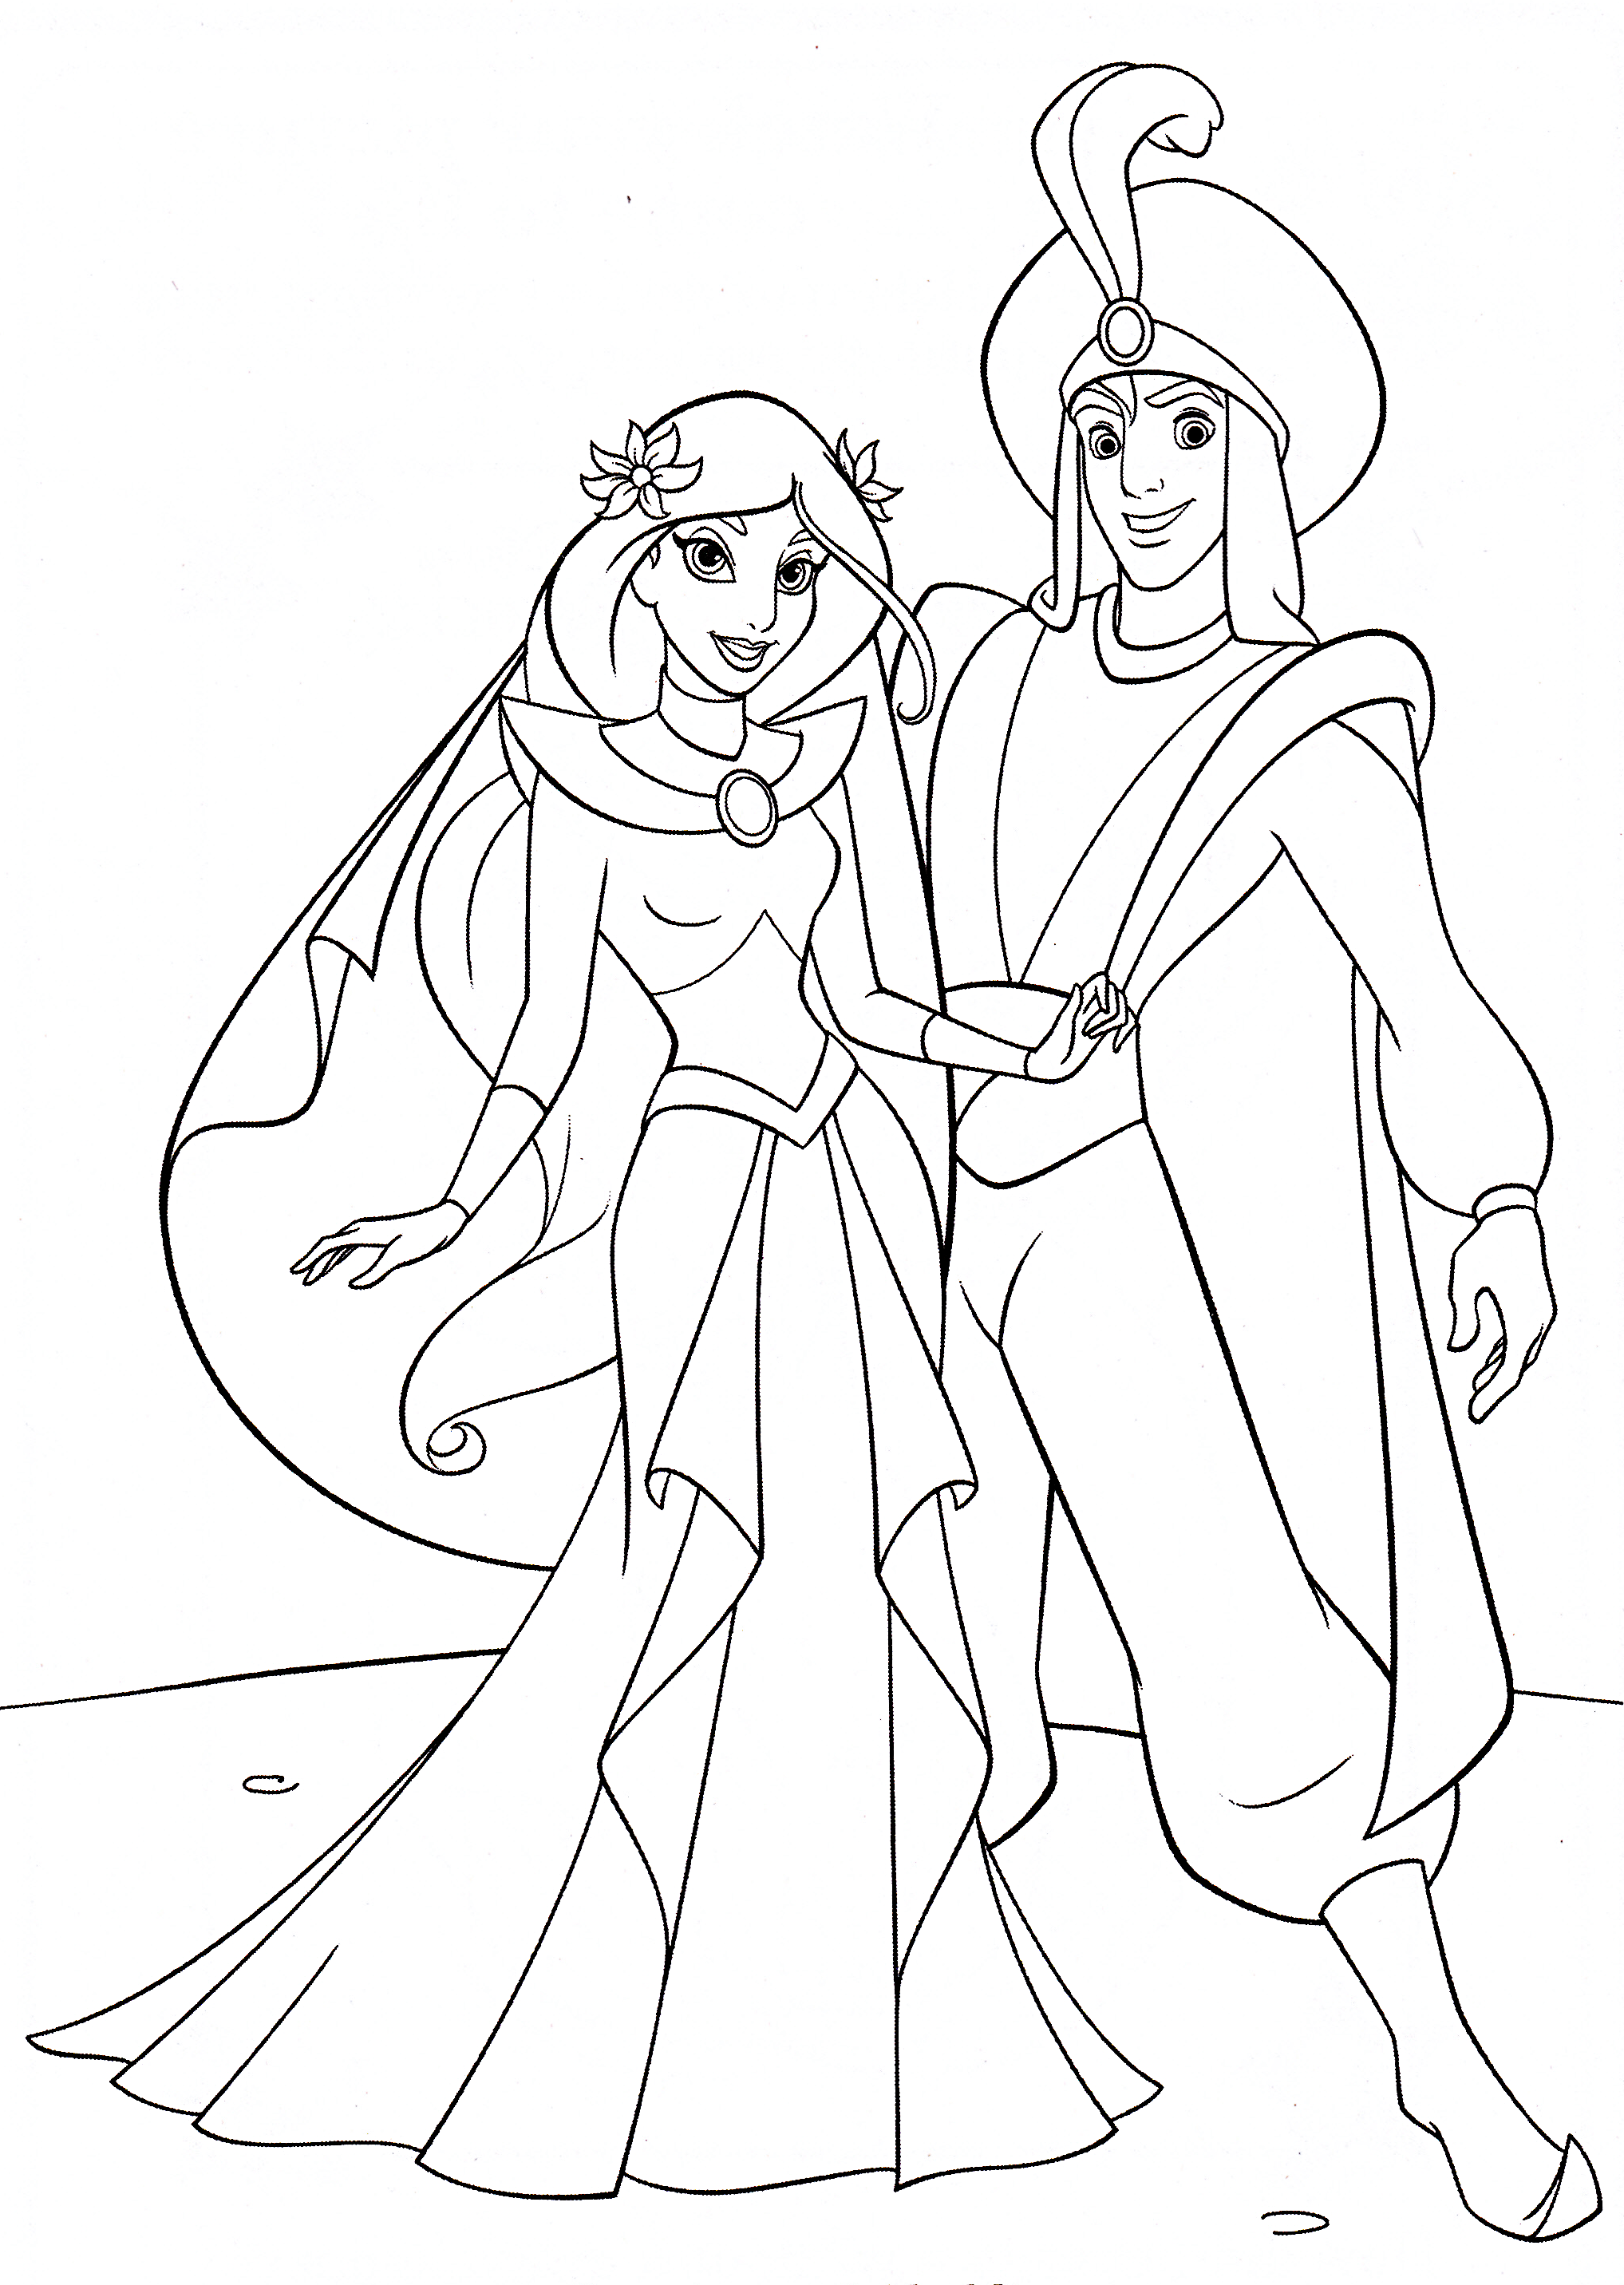 Disney Princess Coloring Pages Jasmine - Coloring Home